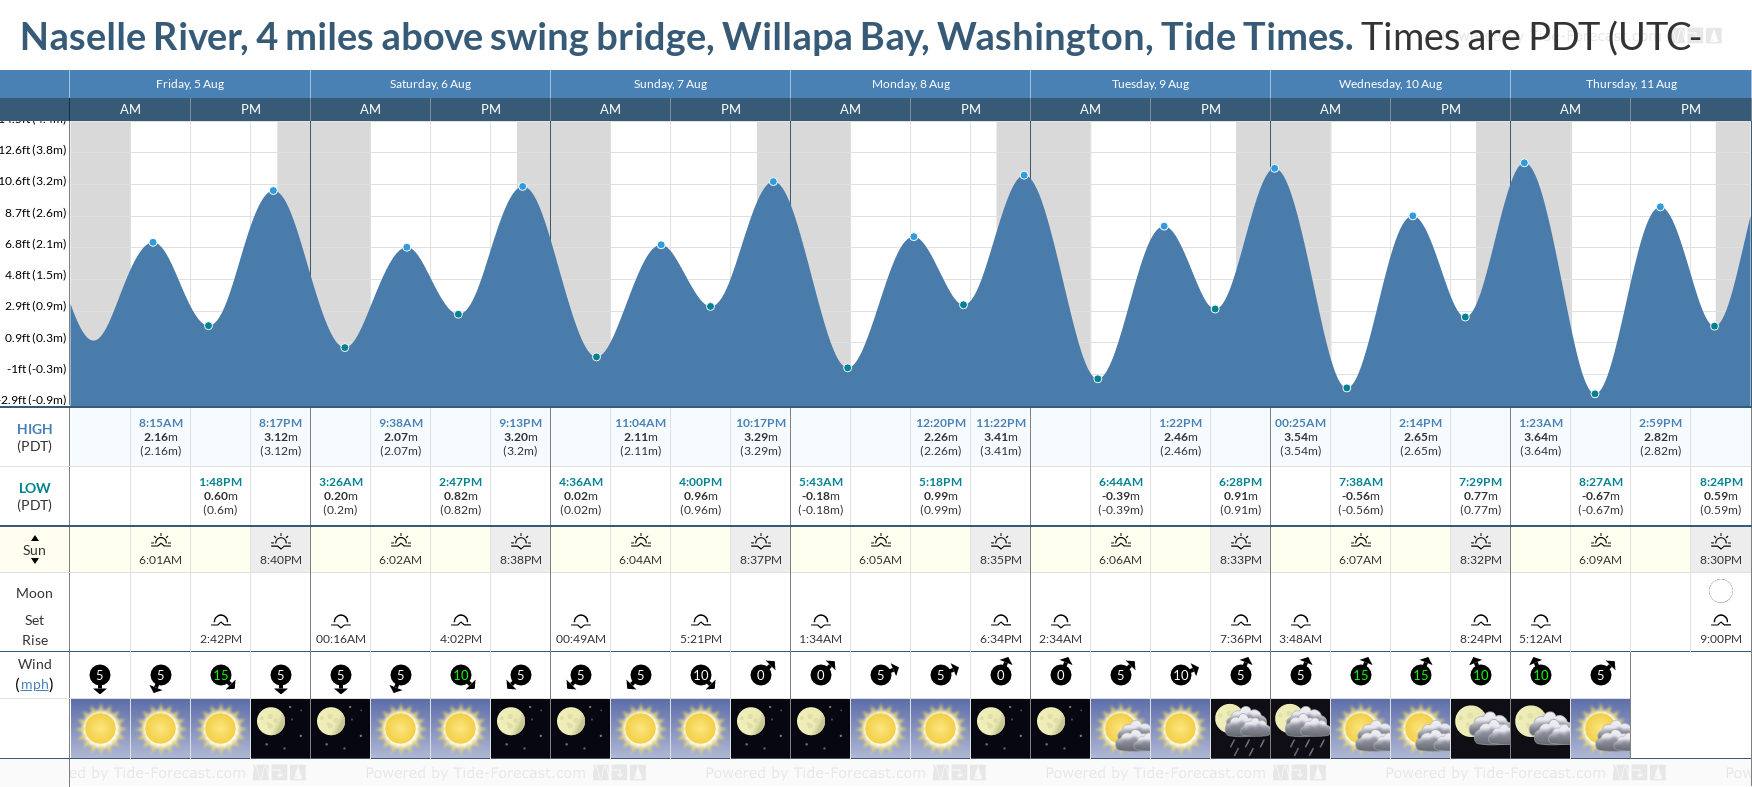 Naselle River, 4 miles above swing bridge, Willapa Bay, Washington Tide Chart including high and low tide tide times for the next 7 days